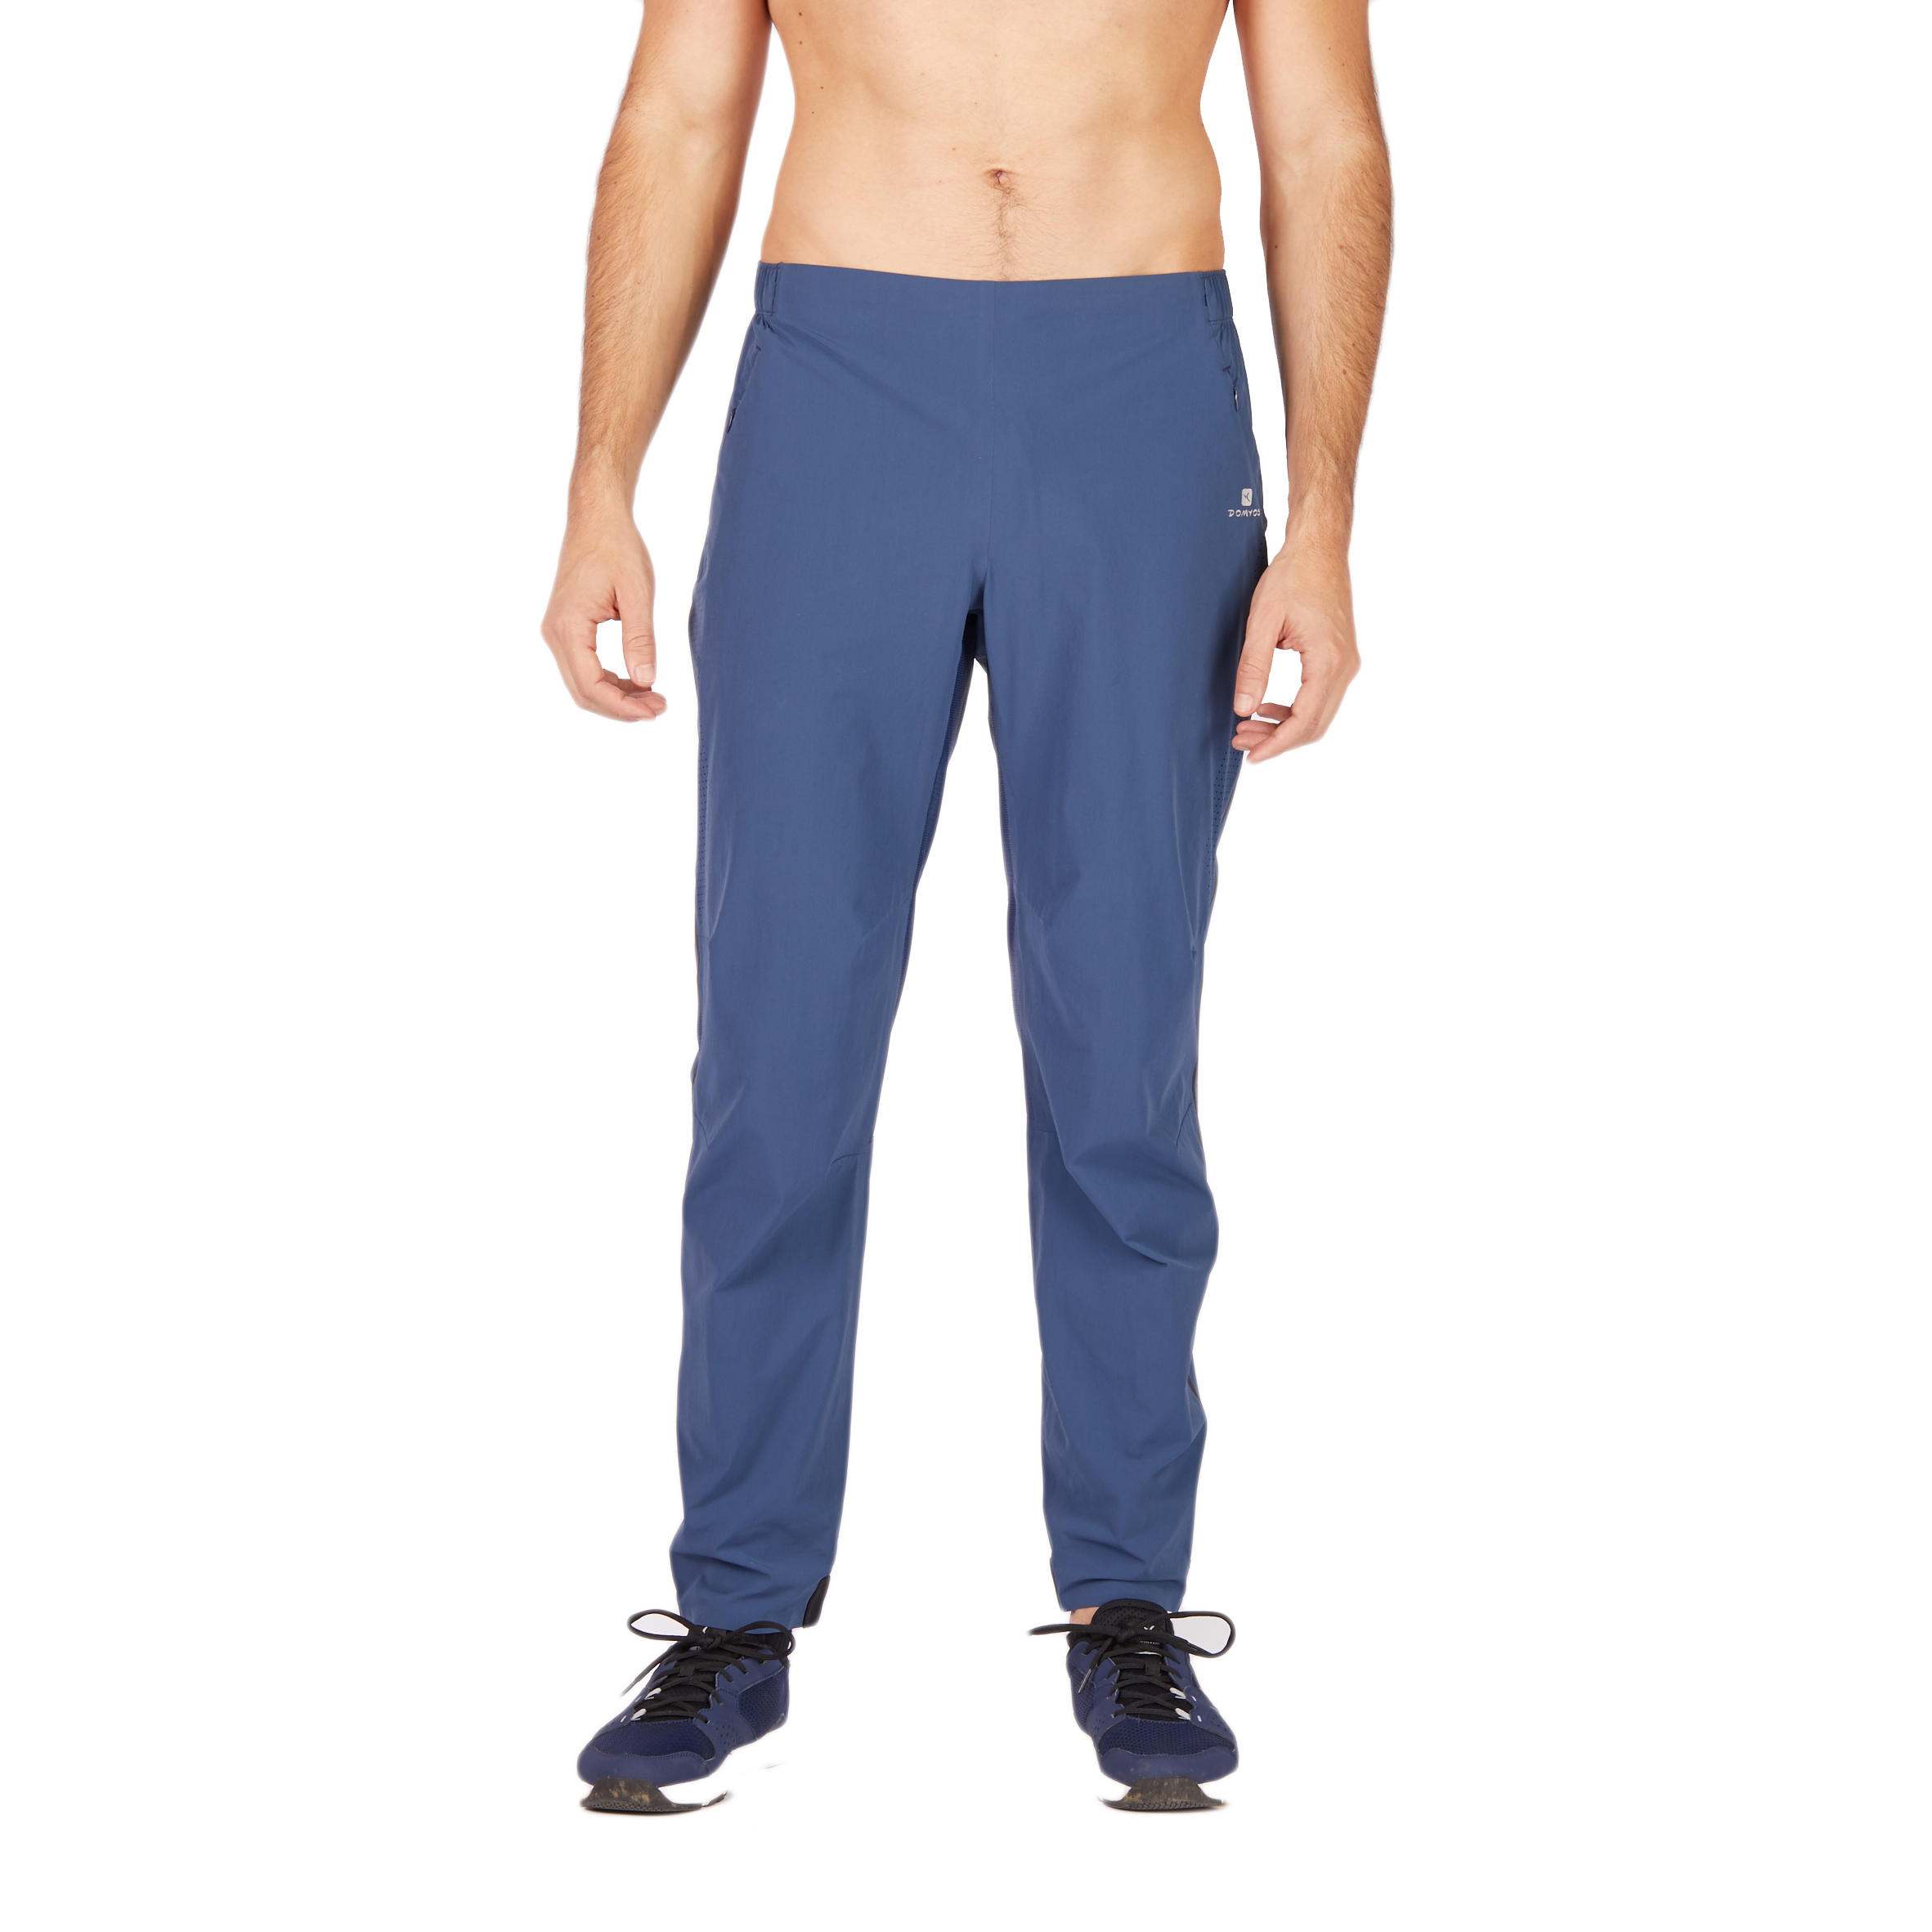 FPA900 Cardio Fitness Bottoms - Blue/Grey